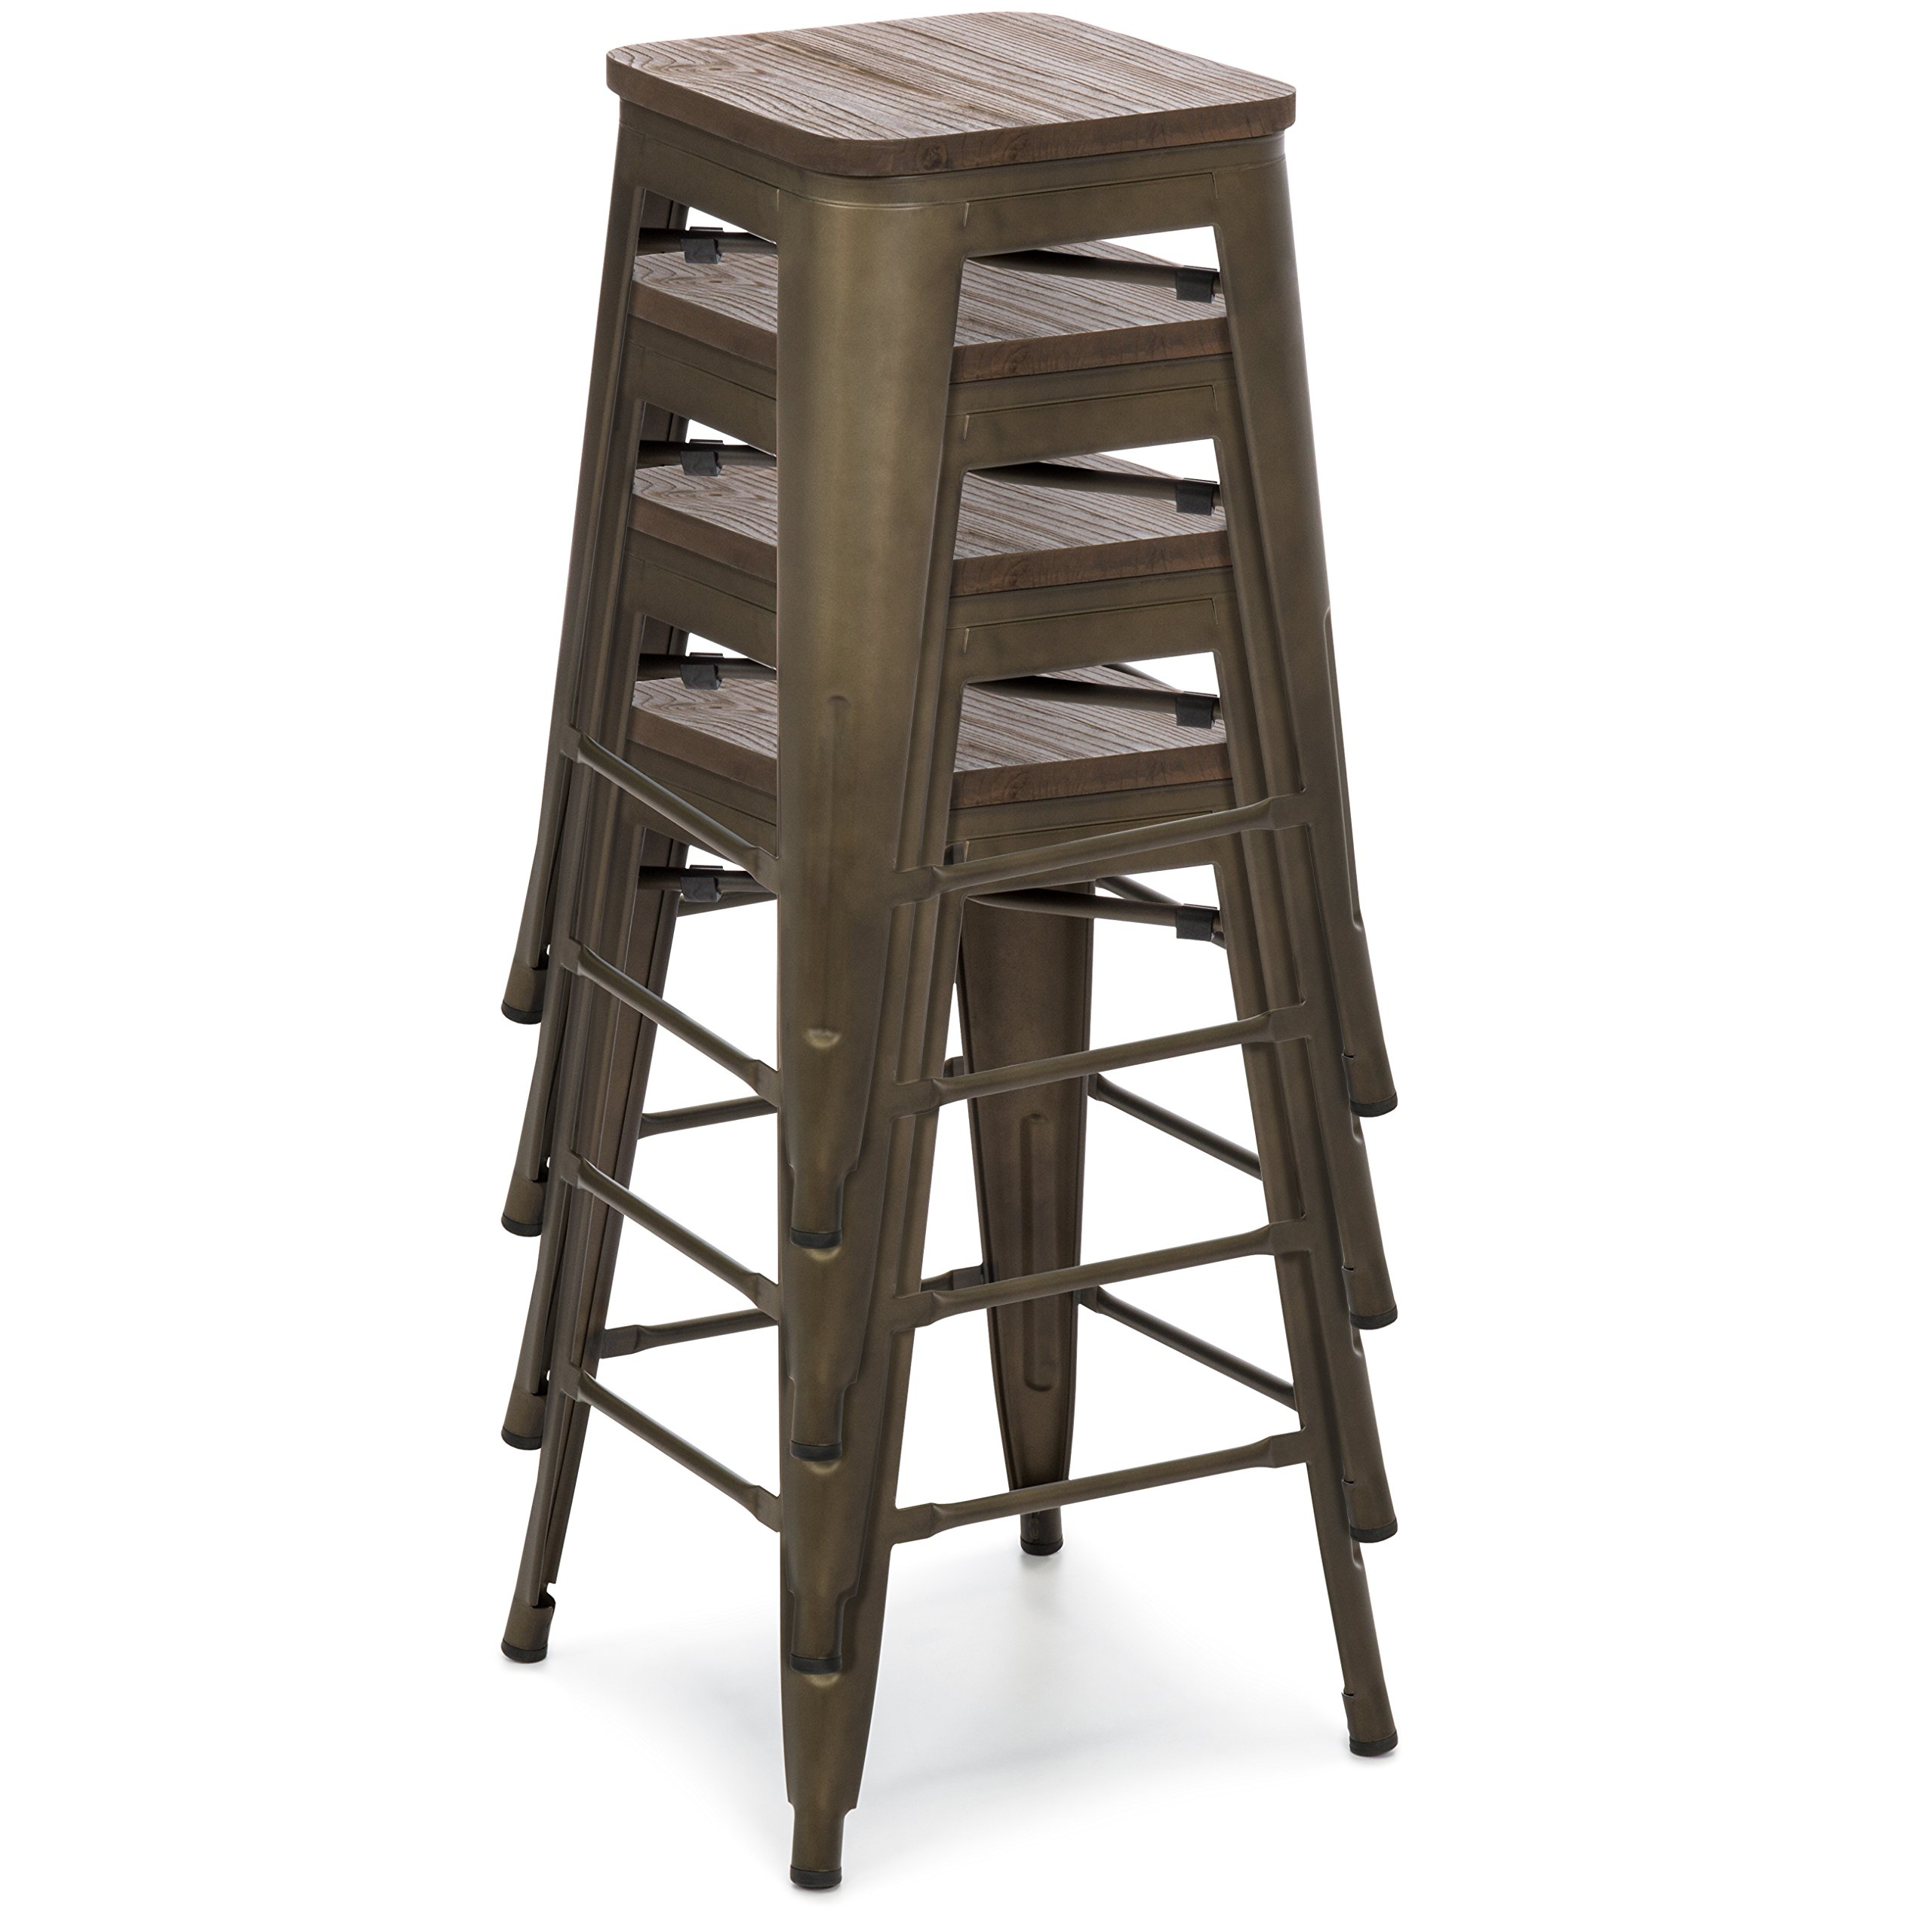 Best Choice Products 24in Set of 4 Stackable Industrial Distressed Metal Counter Height Bar Stools w/Wood Seat - Copper by Best Choice Products (Image #2)